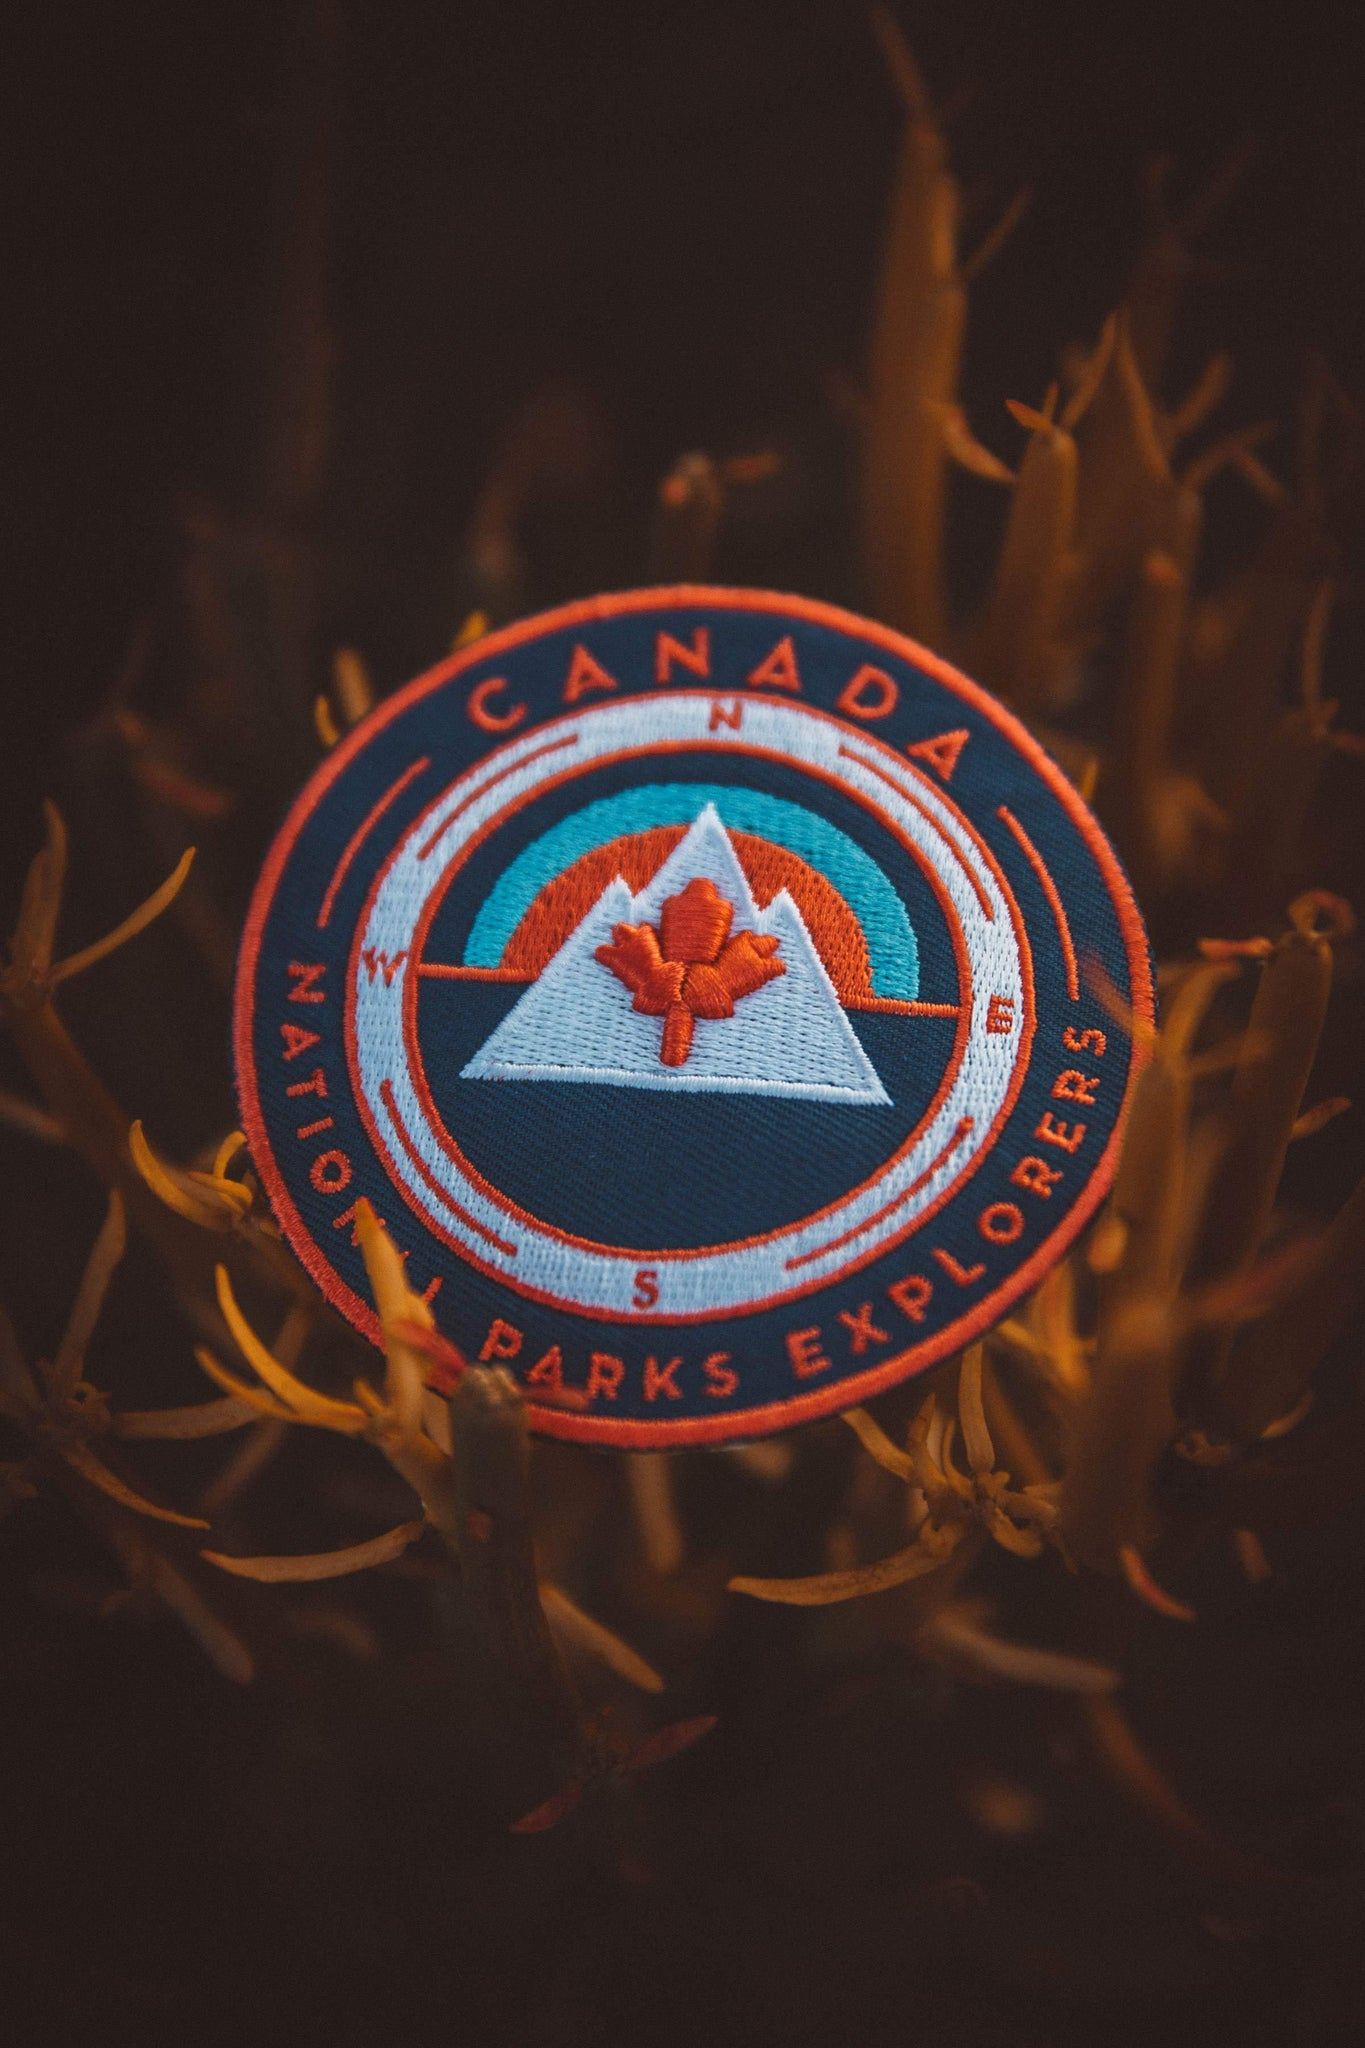 Canada Maple Leaf National Parks Explorer's Patch